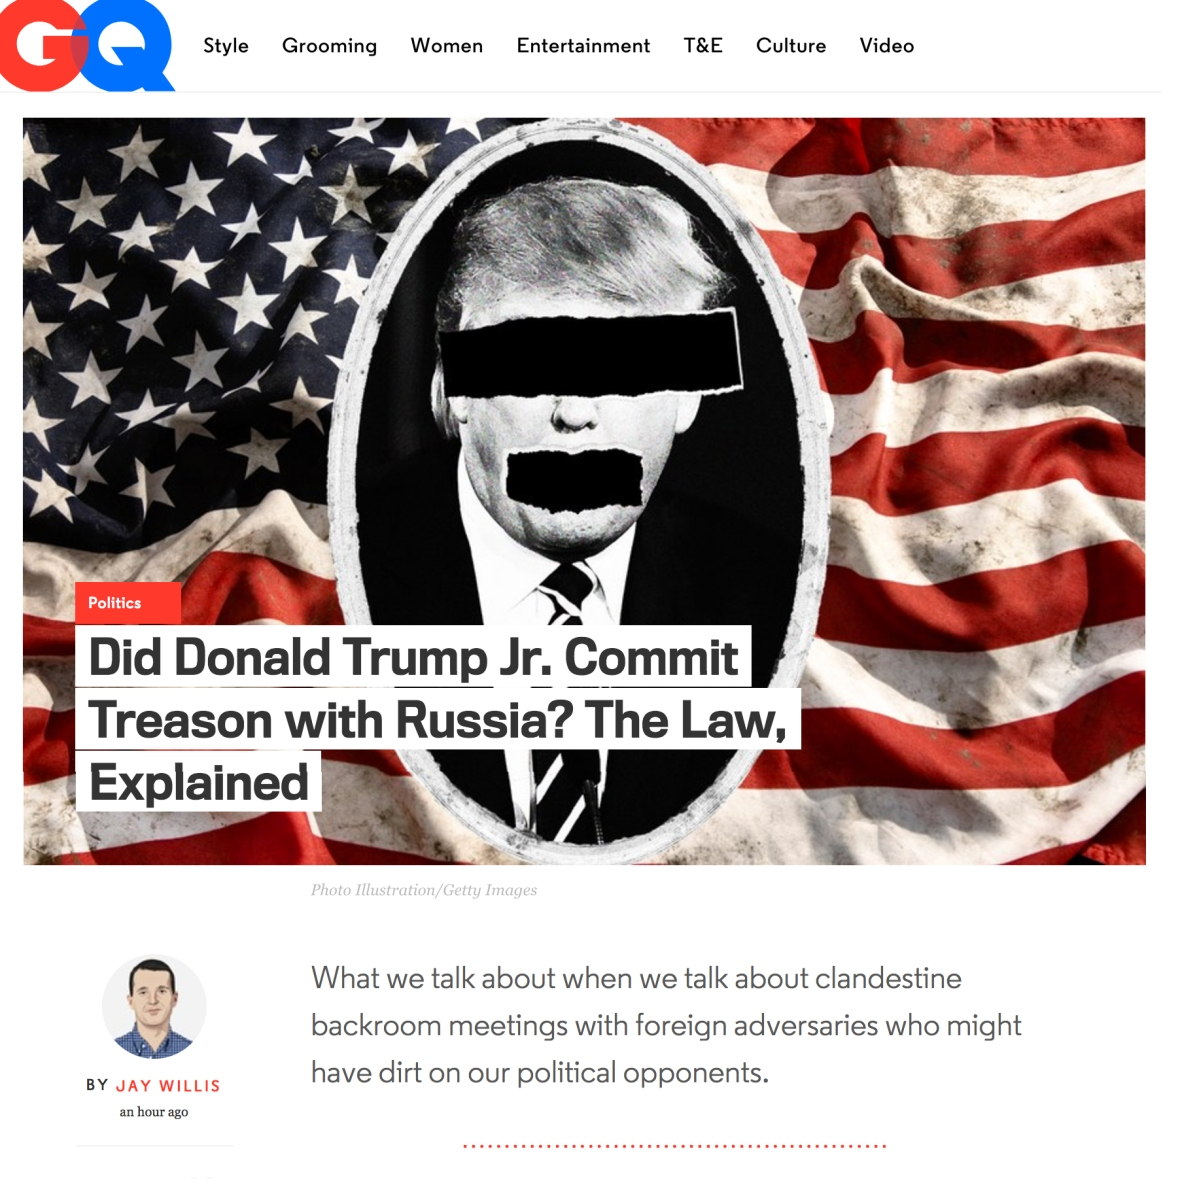 trump-treason-gq.jpg